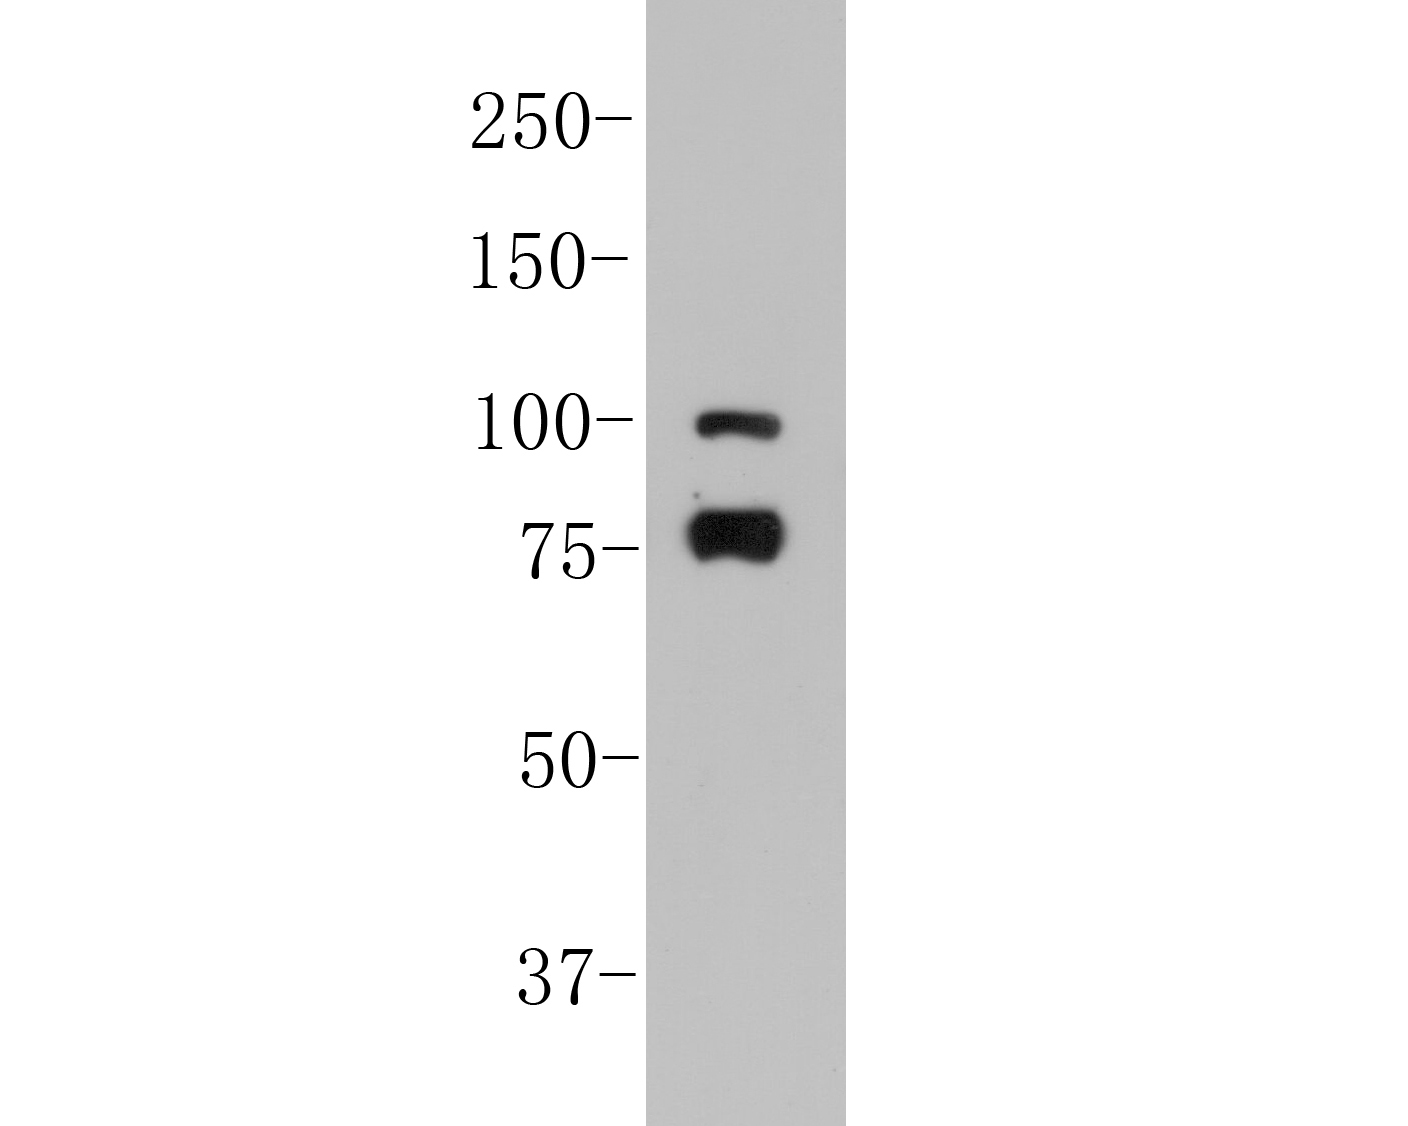 Western blot analysis of SPATA5L1 on K562 cell lysates. Proteins were transferred to a PVDF membrane and blocked with 5% BSA in PBS for 1 hour at room temperature. The primary antibody (ER1901-68, 1/500) was used in 5% BSA at room temperature for 2 hours. Goat Anti-Rabbit IgG - HRP Secondary Antibody (HA1001) at 1:5,000 dilution was used for 1 hour at room temperature.